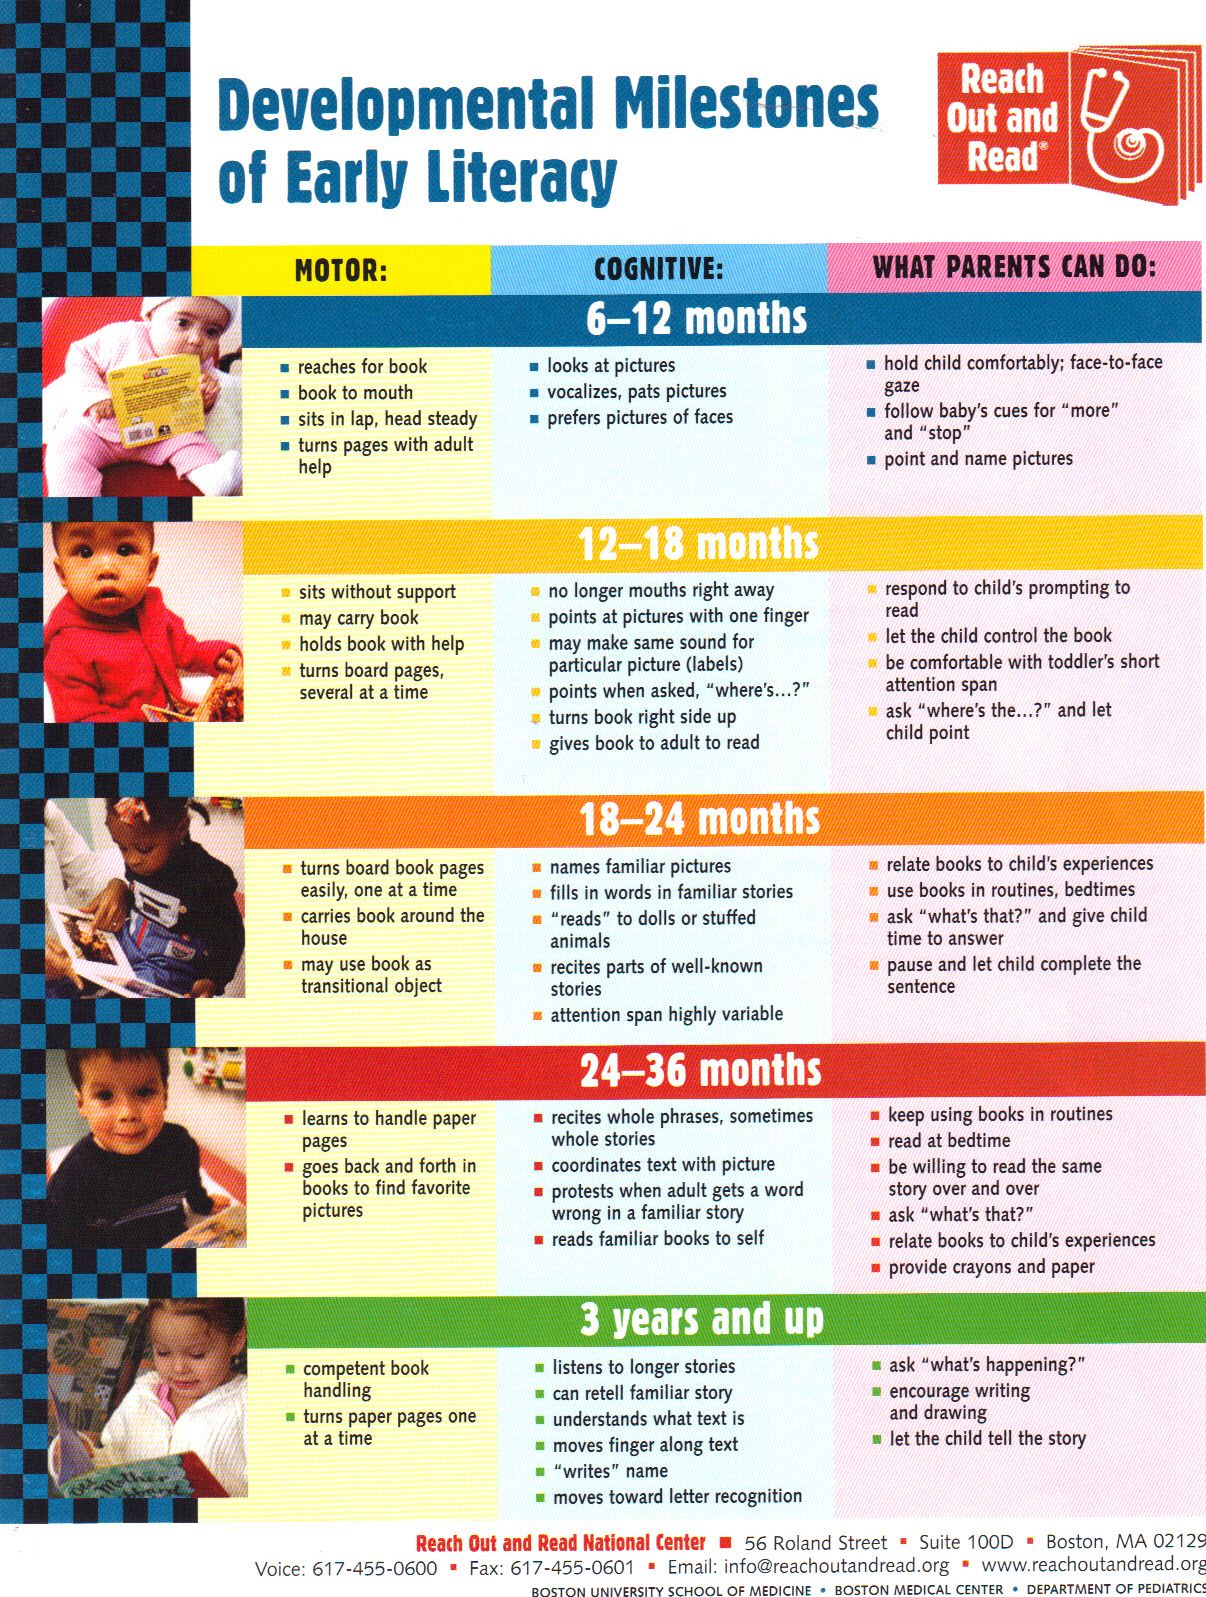 Developmental Milestones of Early Literacy From Reach Out ...